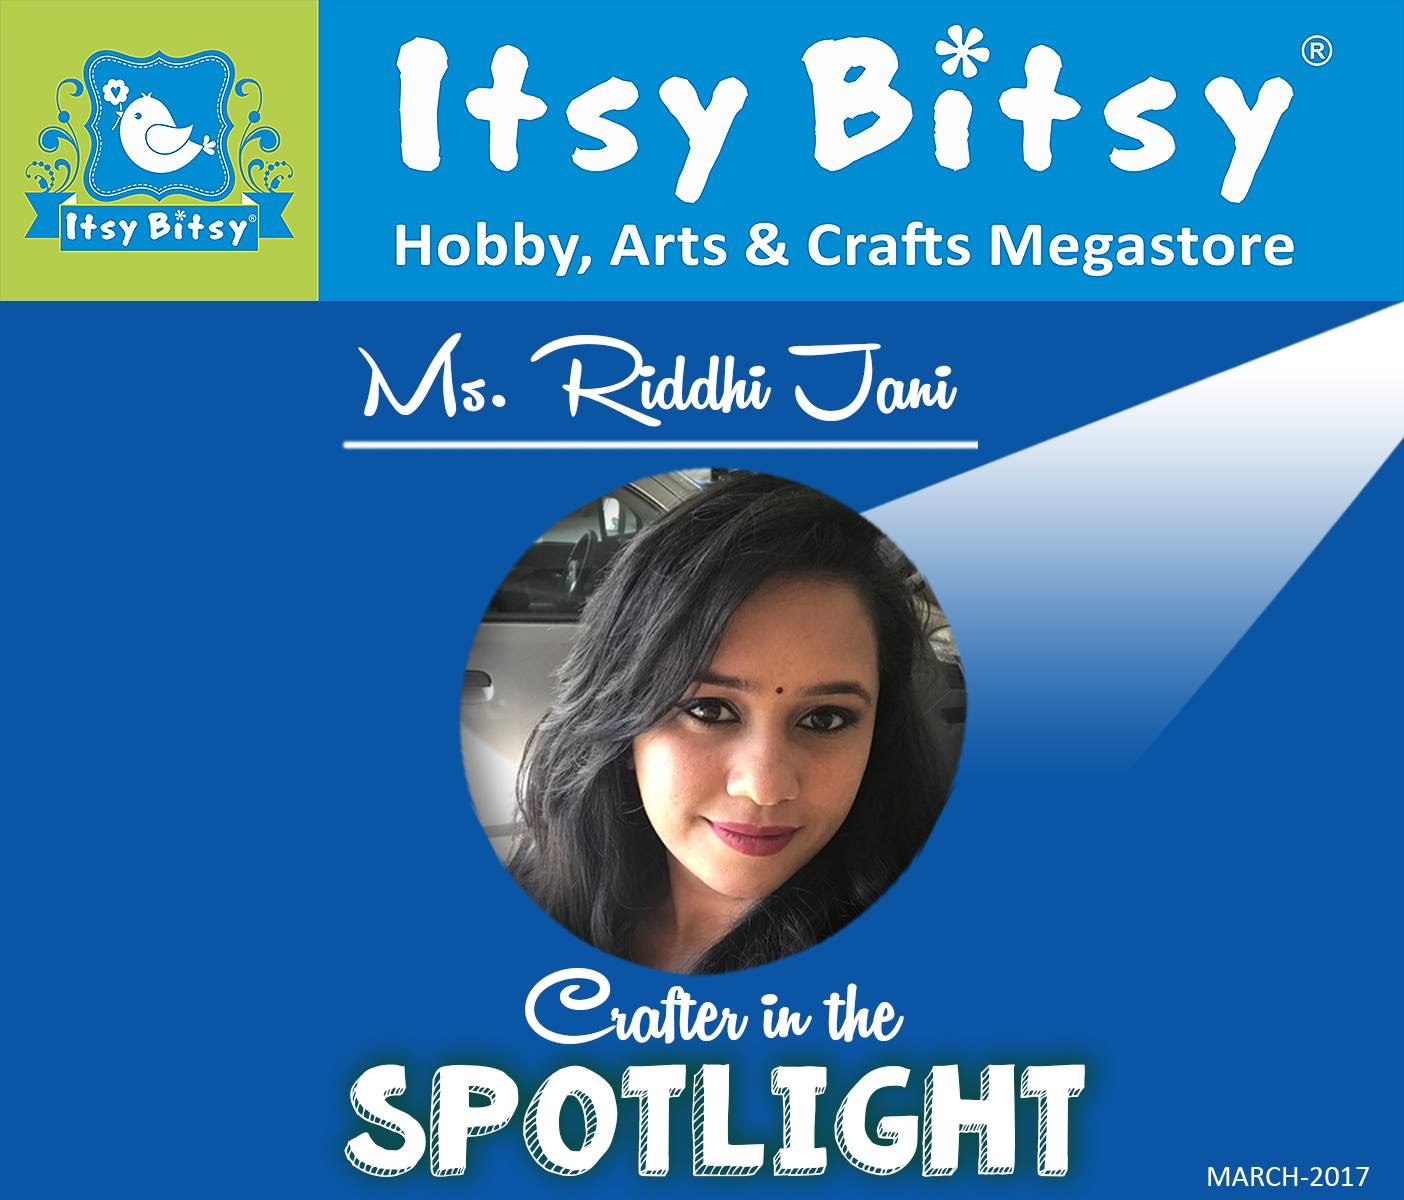 Crafter in the spotlight!!